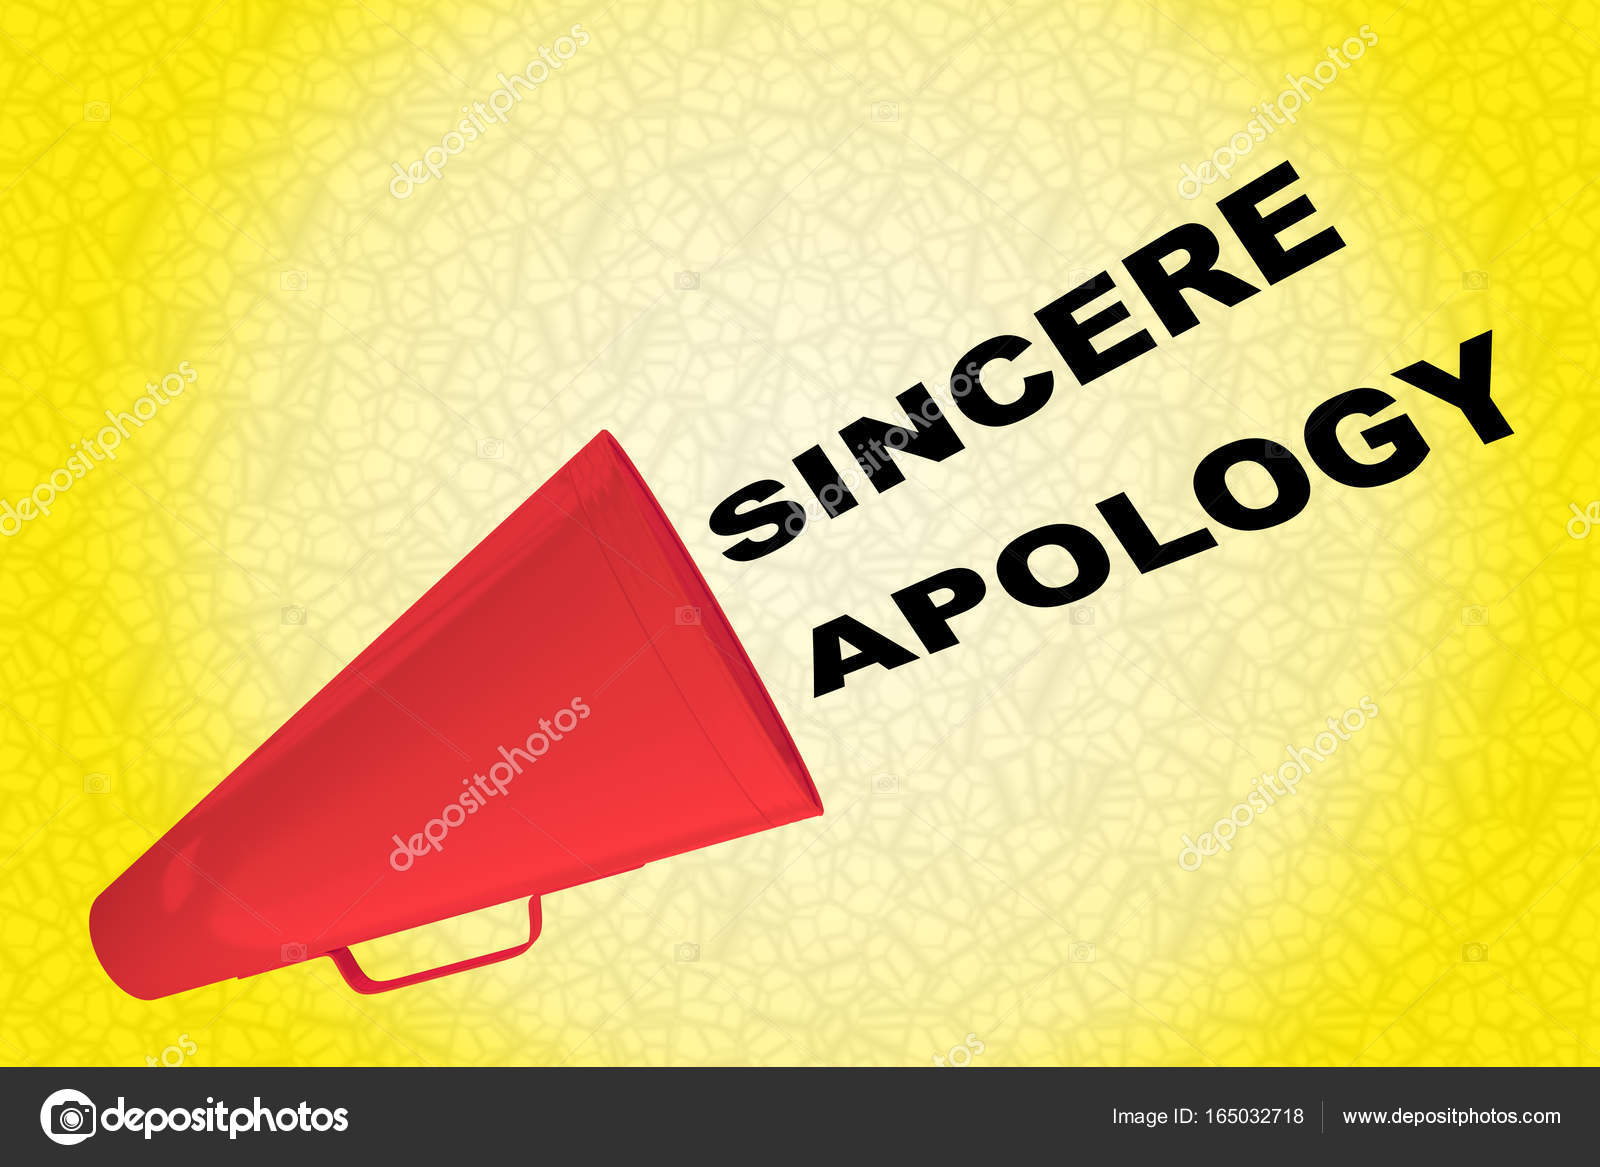 sincere apology text